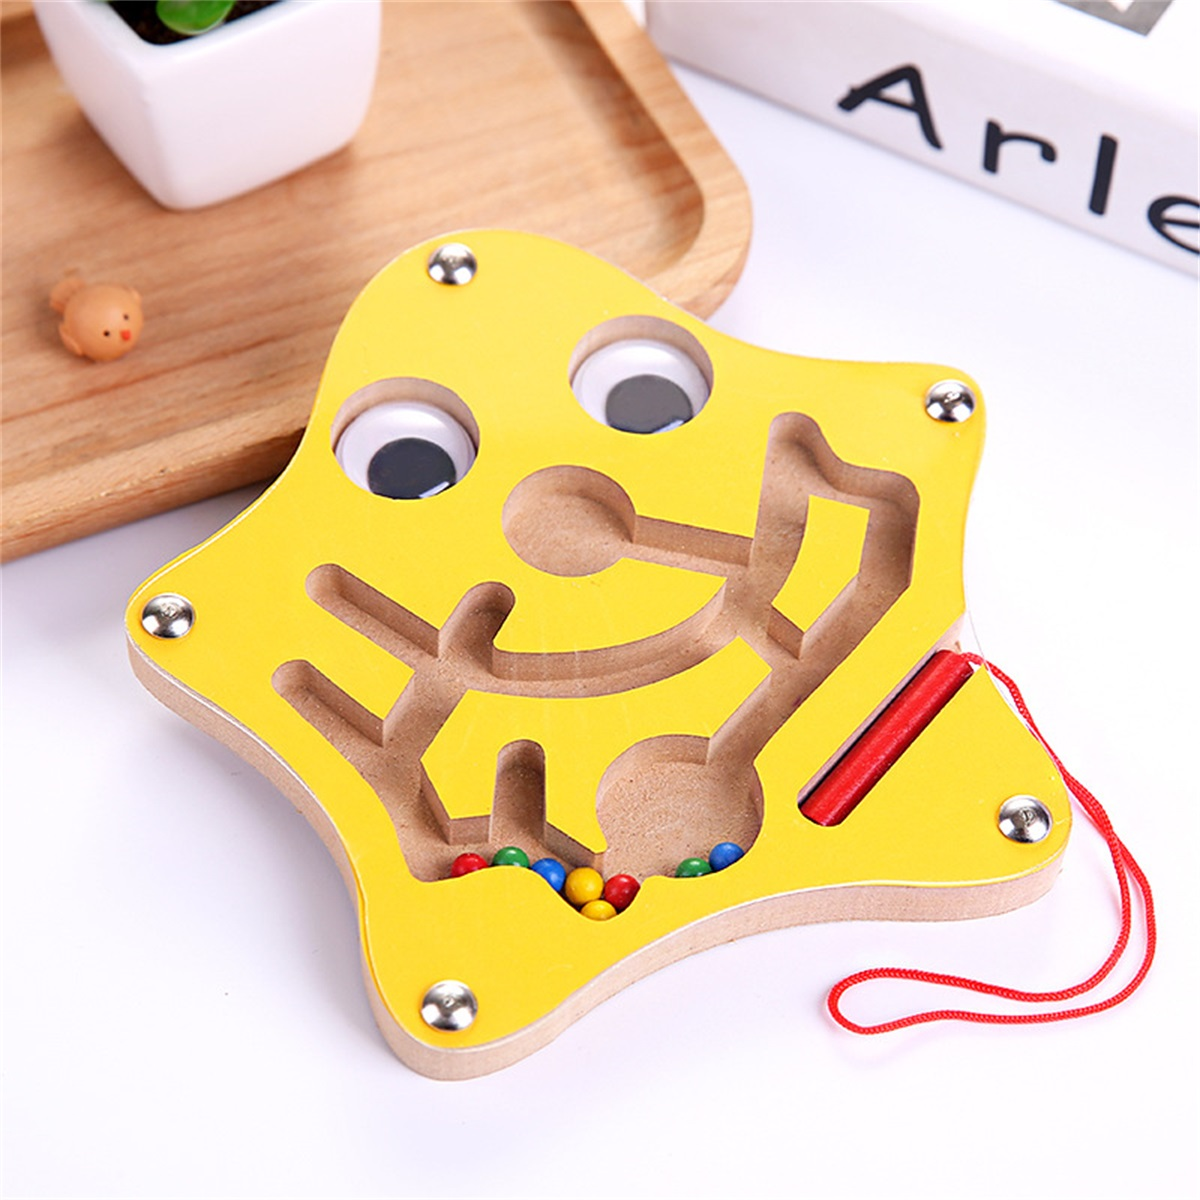 Kids Wooden Magnetic Maze Puzzles Intellectual Jigsaw Board Toys Development IQ Maze Children Magic Cubes Children Puzzle Child